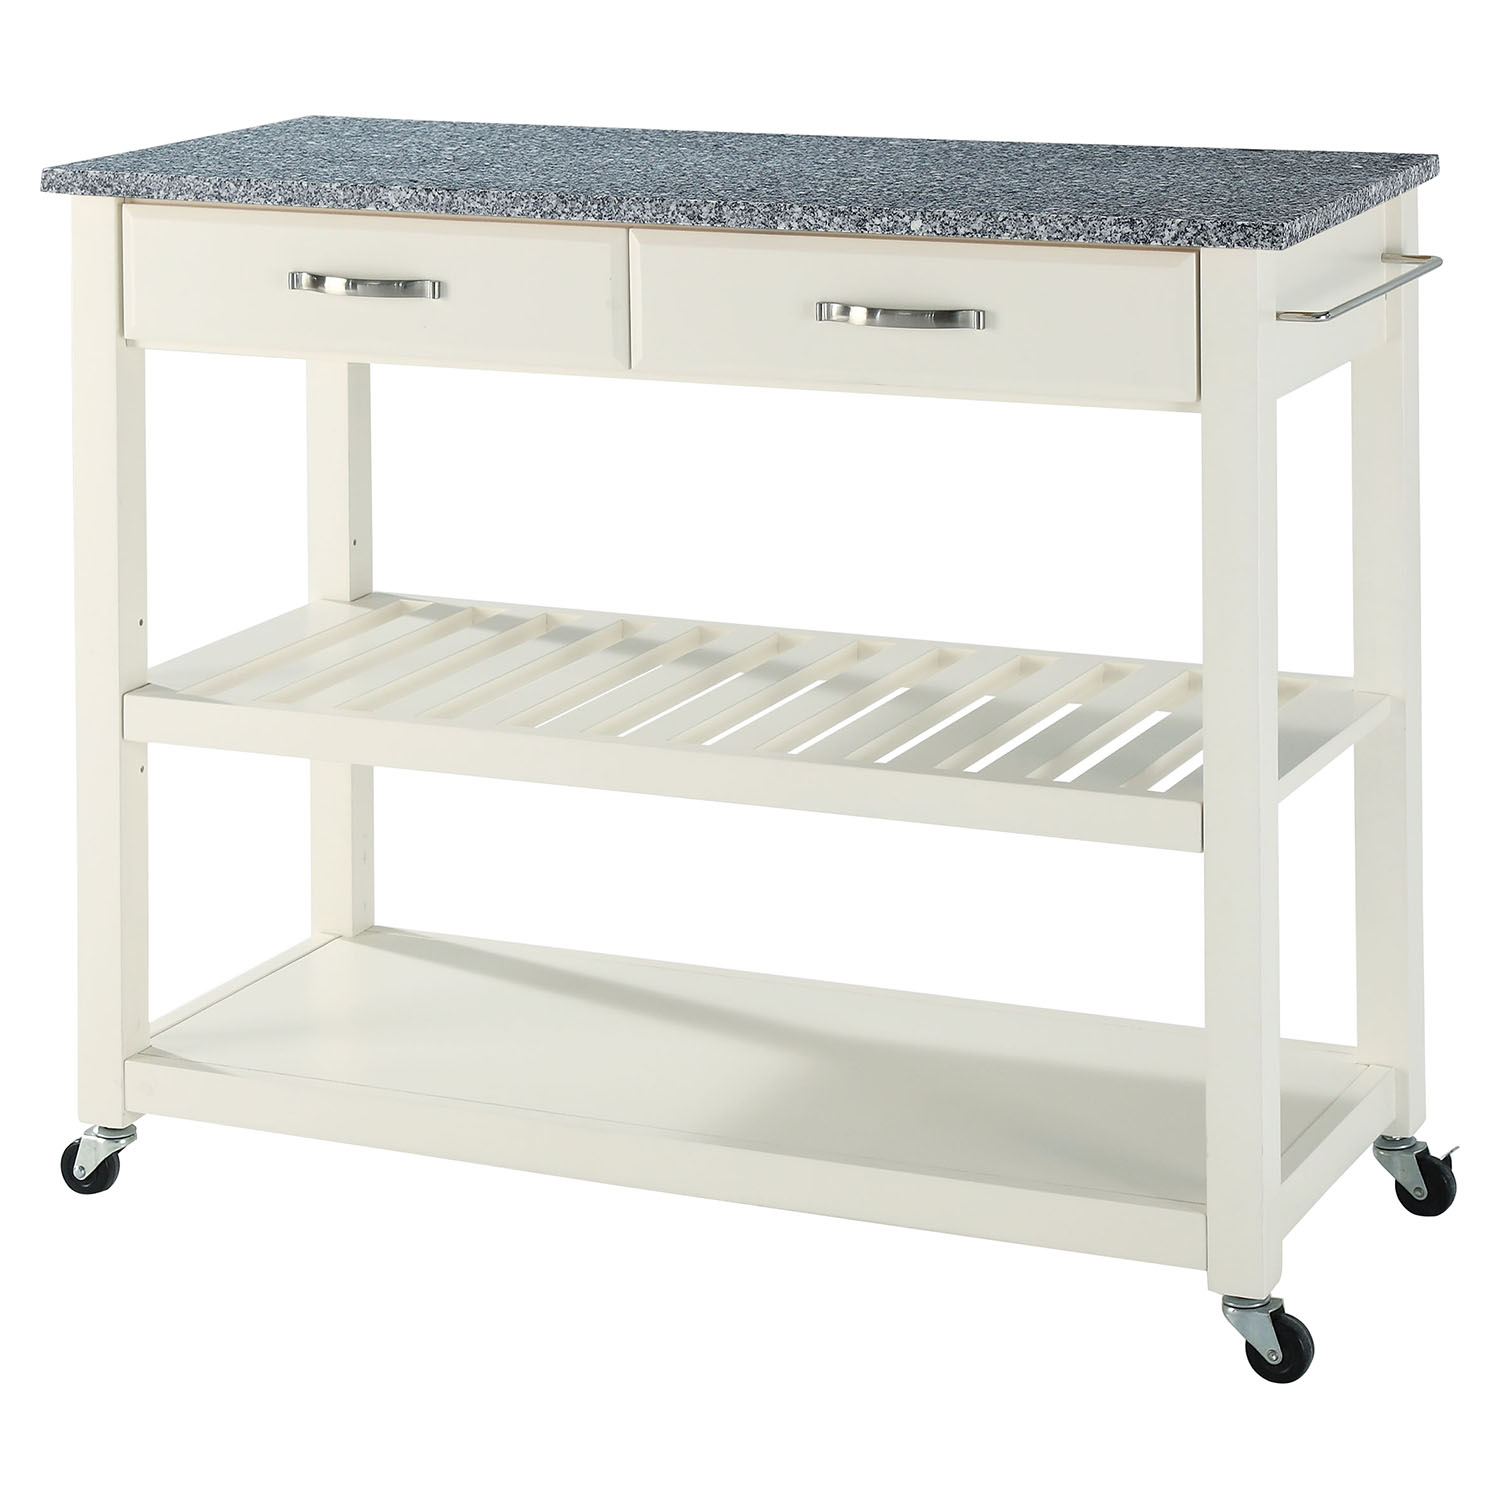 Solid Granite Top Kitchen Cart/Island   Optional Stool Storage, White    CROS  ...